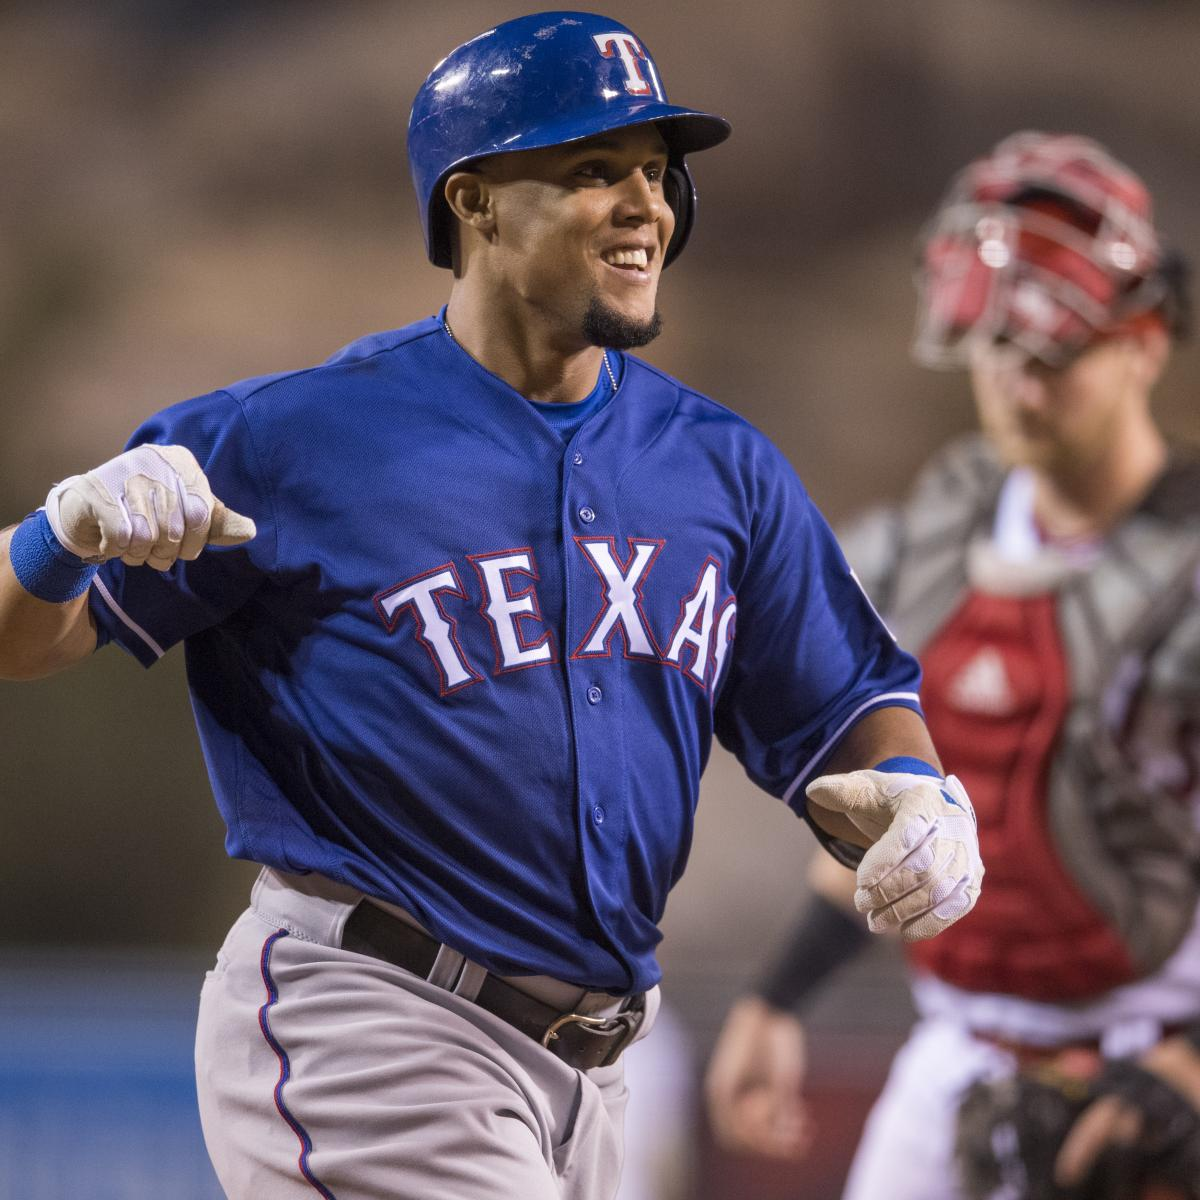 Carlos Gomez Re-Signs With Rangers: Latest Contract